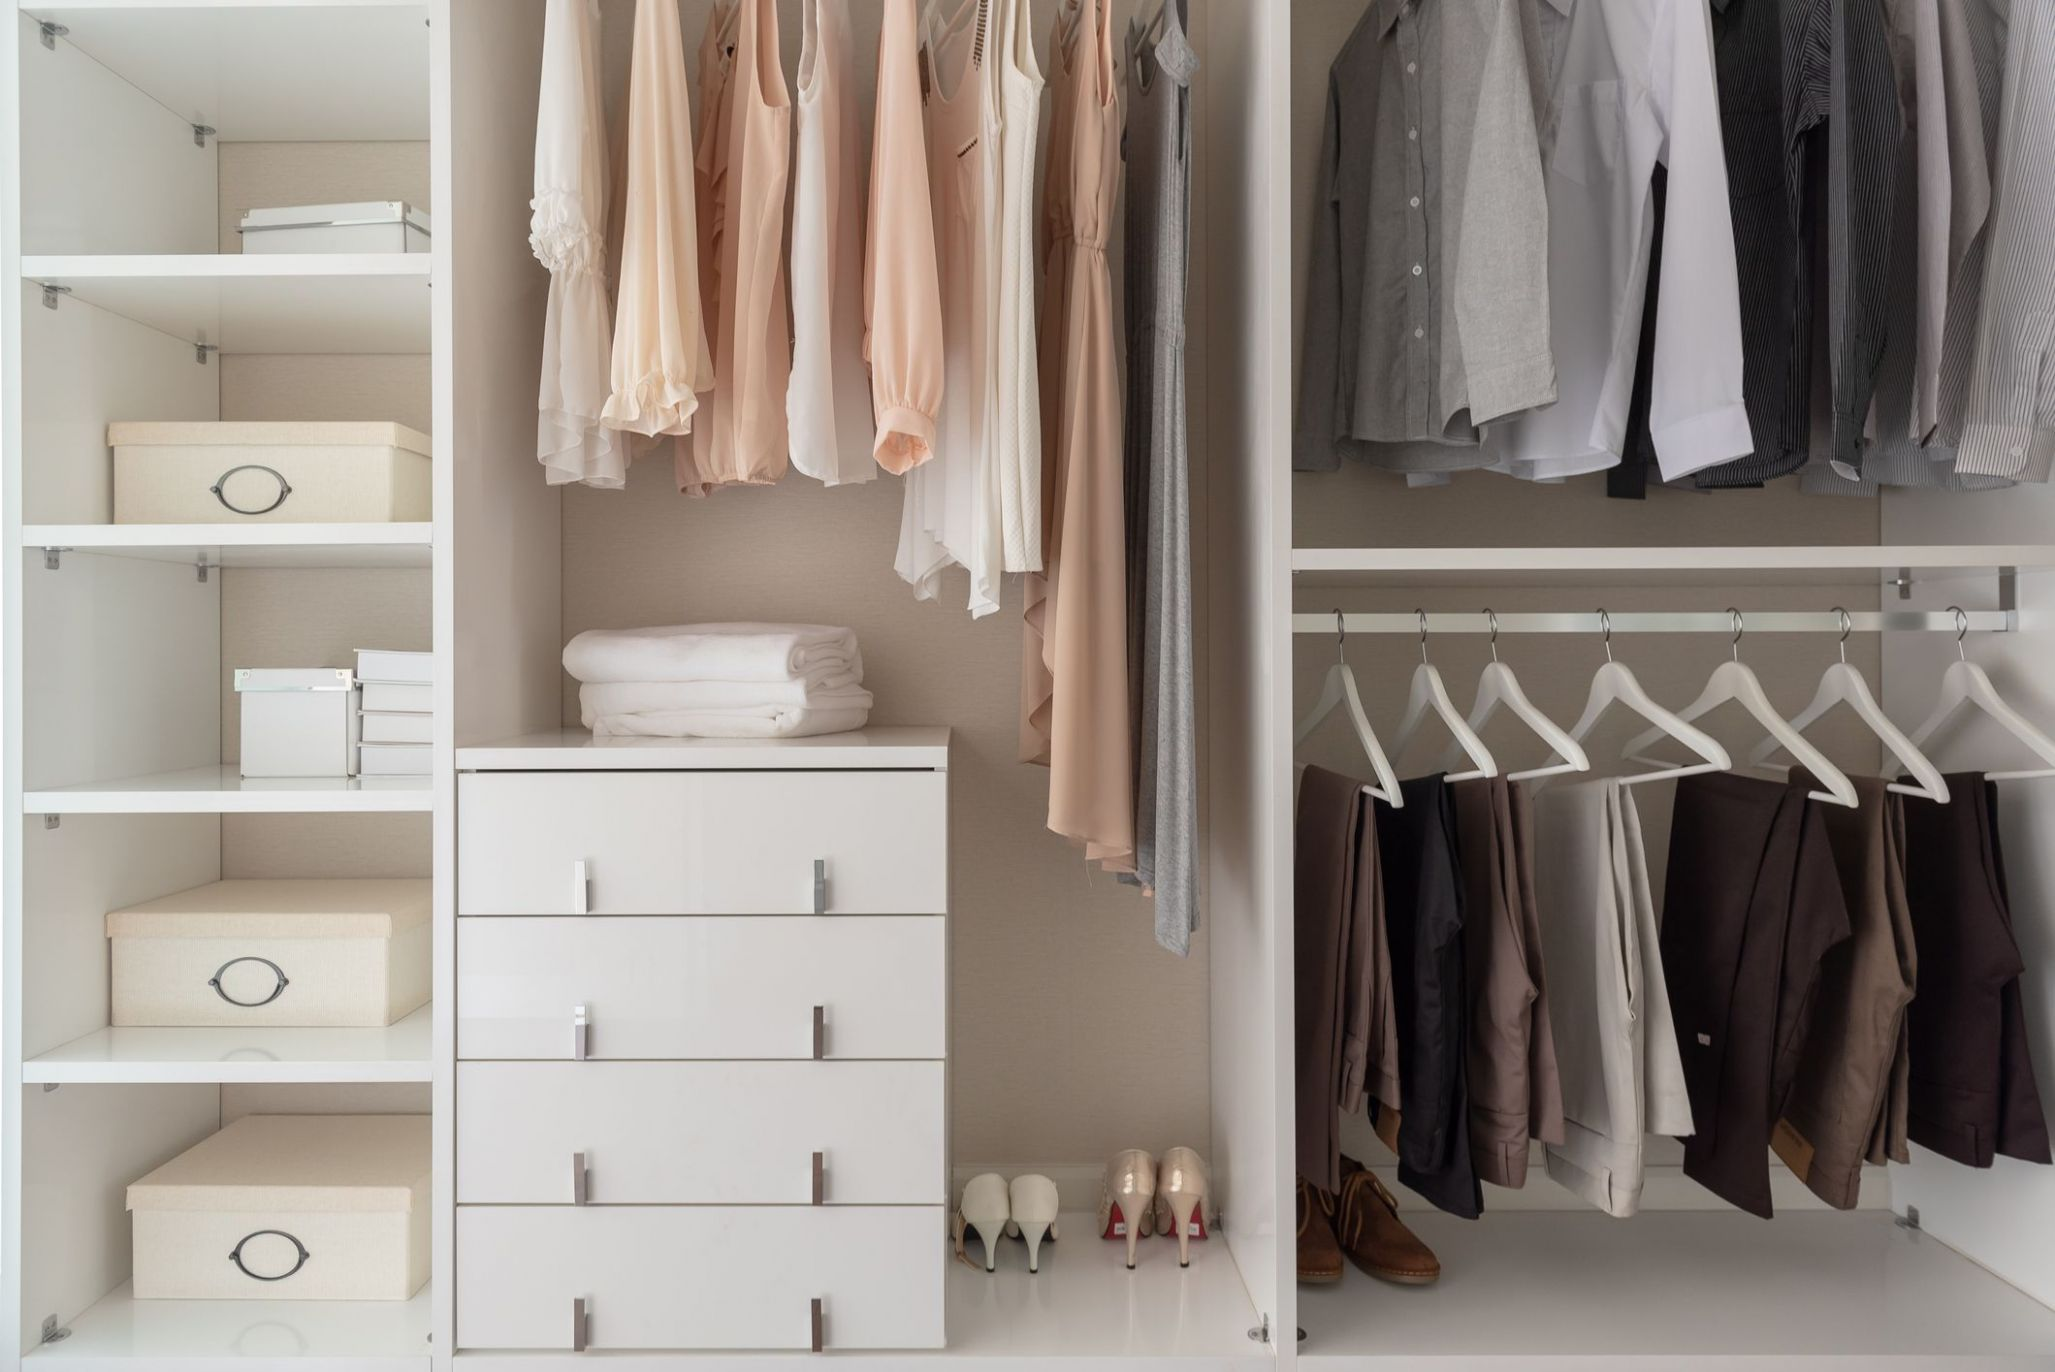 The Ultimate Guide to Organizing Your Closet - closet arrangement ideas